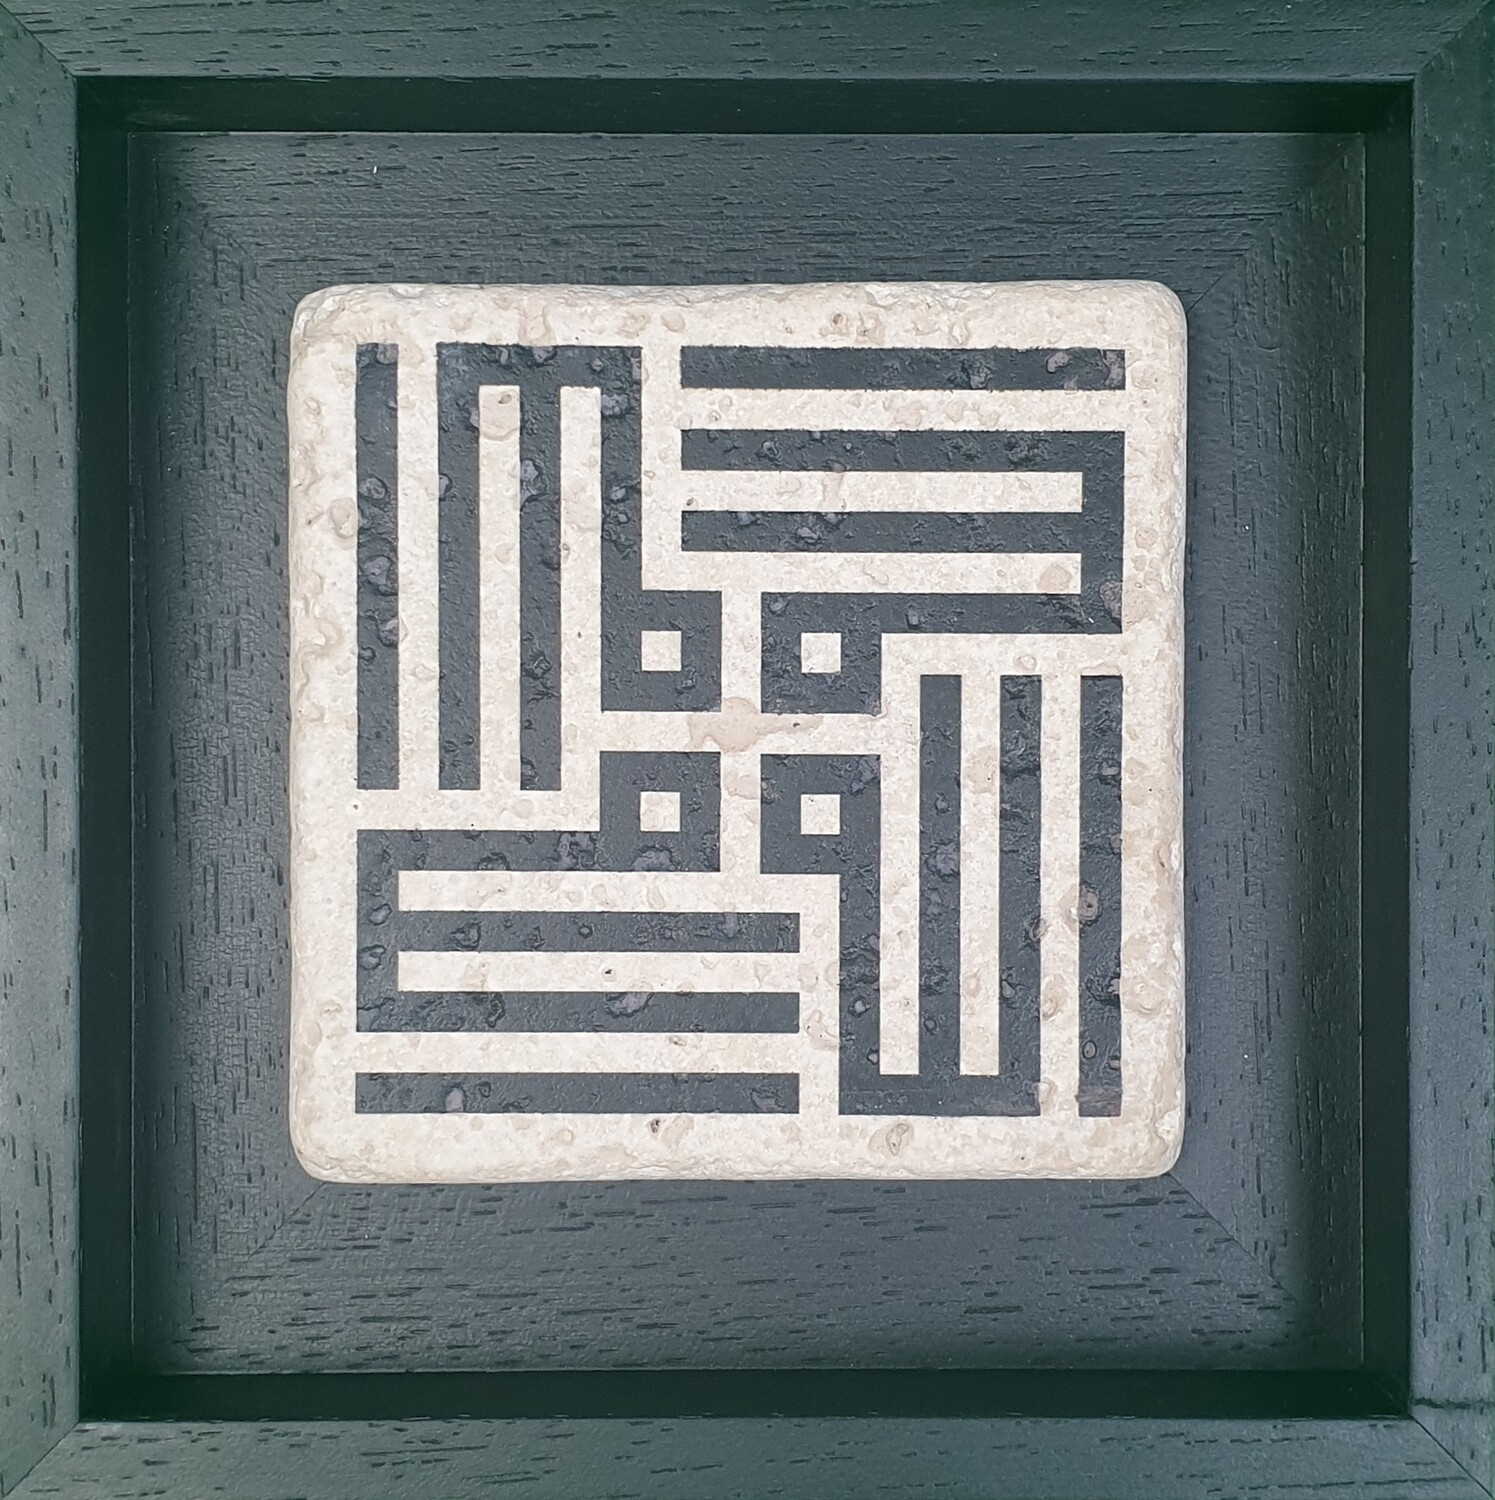 Allah Kufic Calligraphy Rotated Design Stone Art